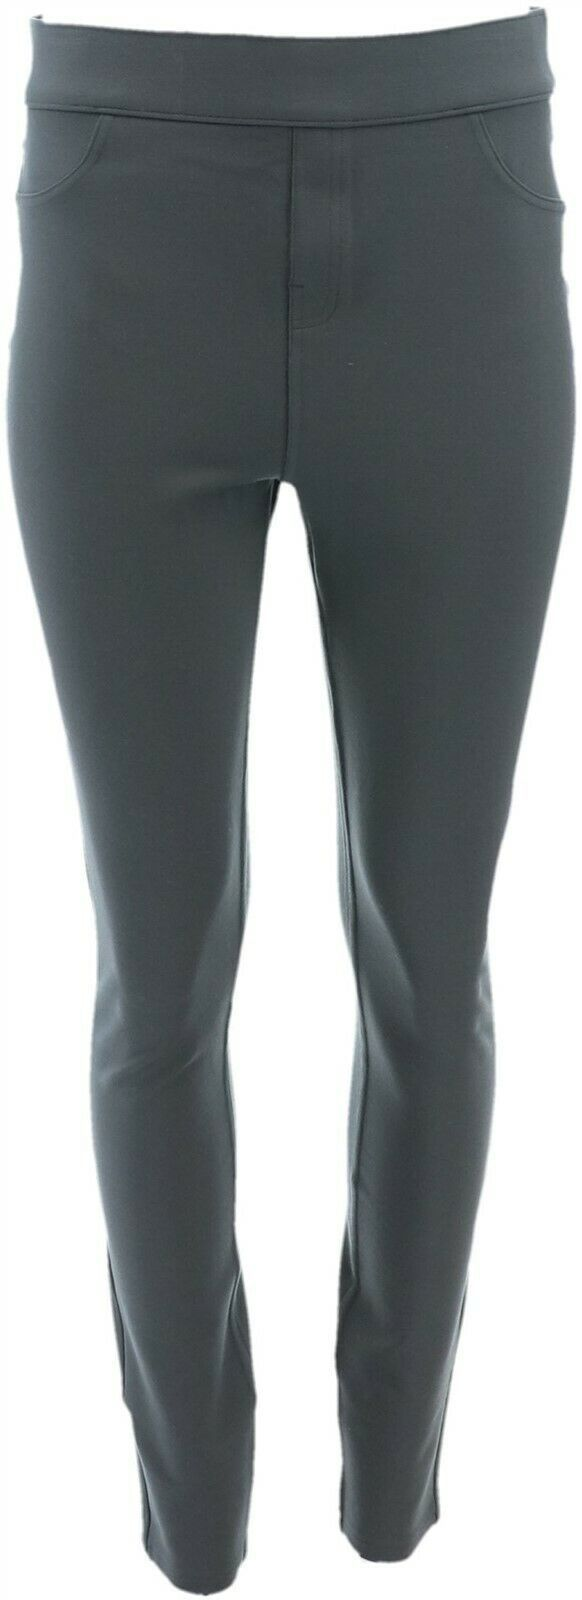 Primary image for Spanx Ponte Ankle-Length Leggings Tall Pepper Grey L NEW A309031